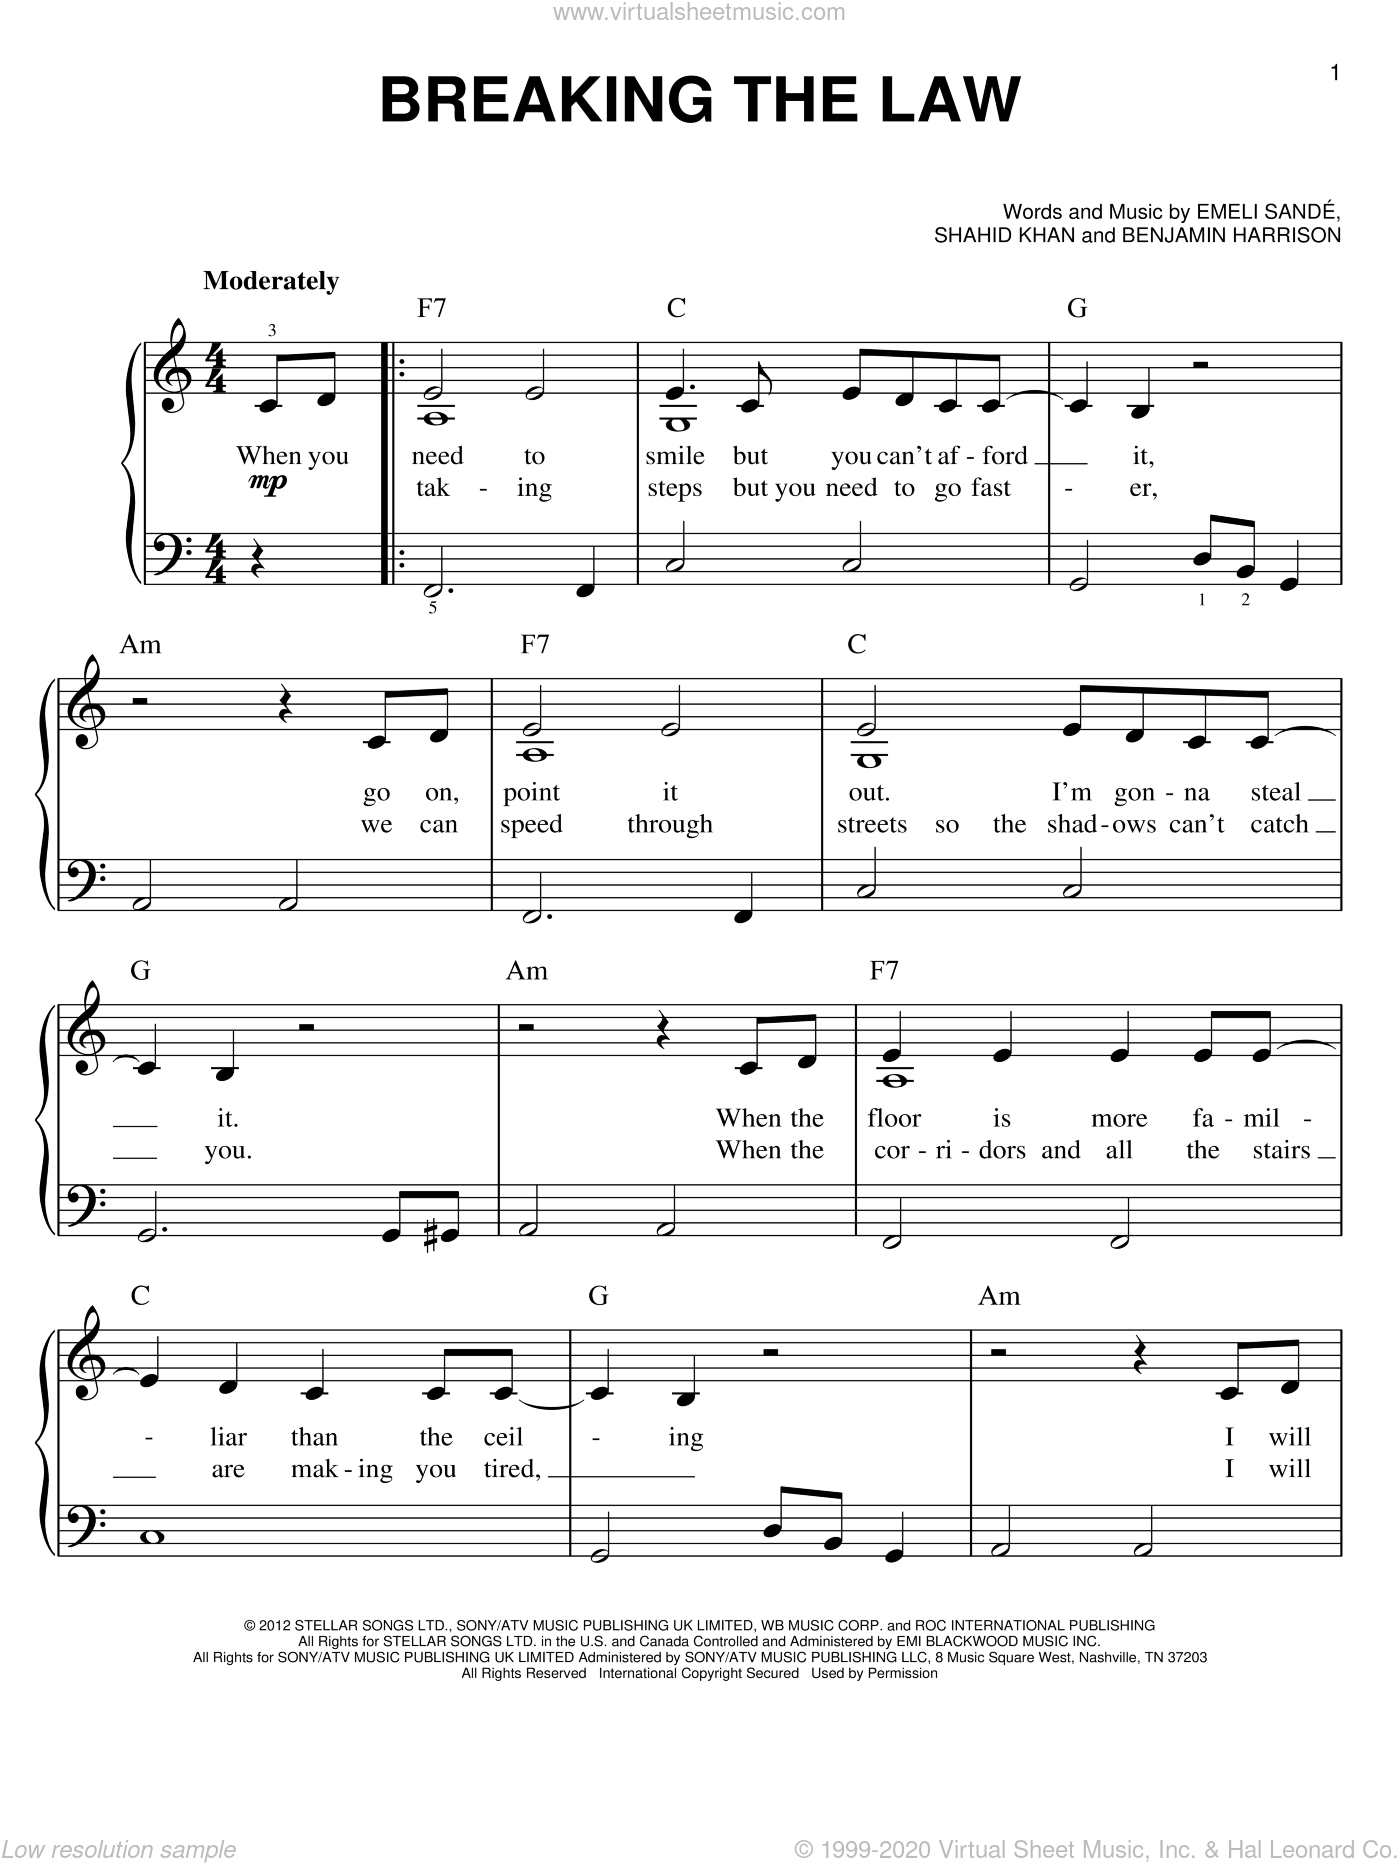 Sande - Breaking The Law sheet music for piano solo [PDF]